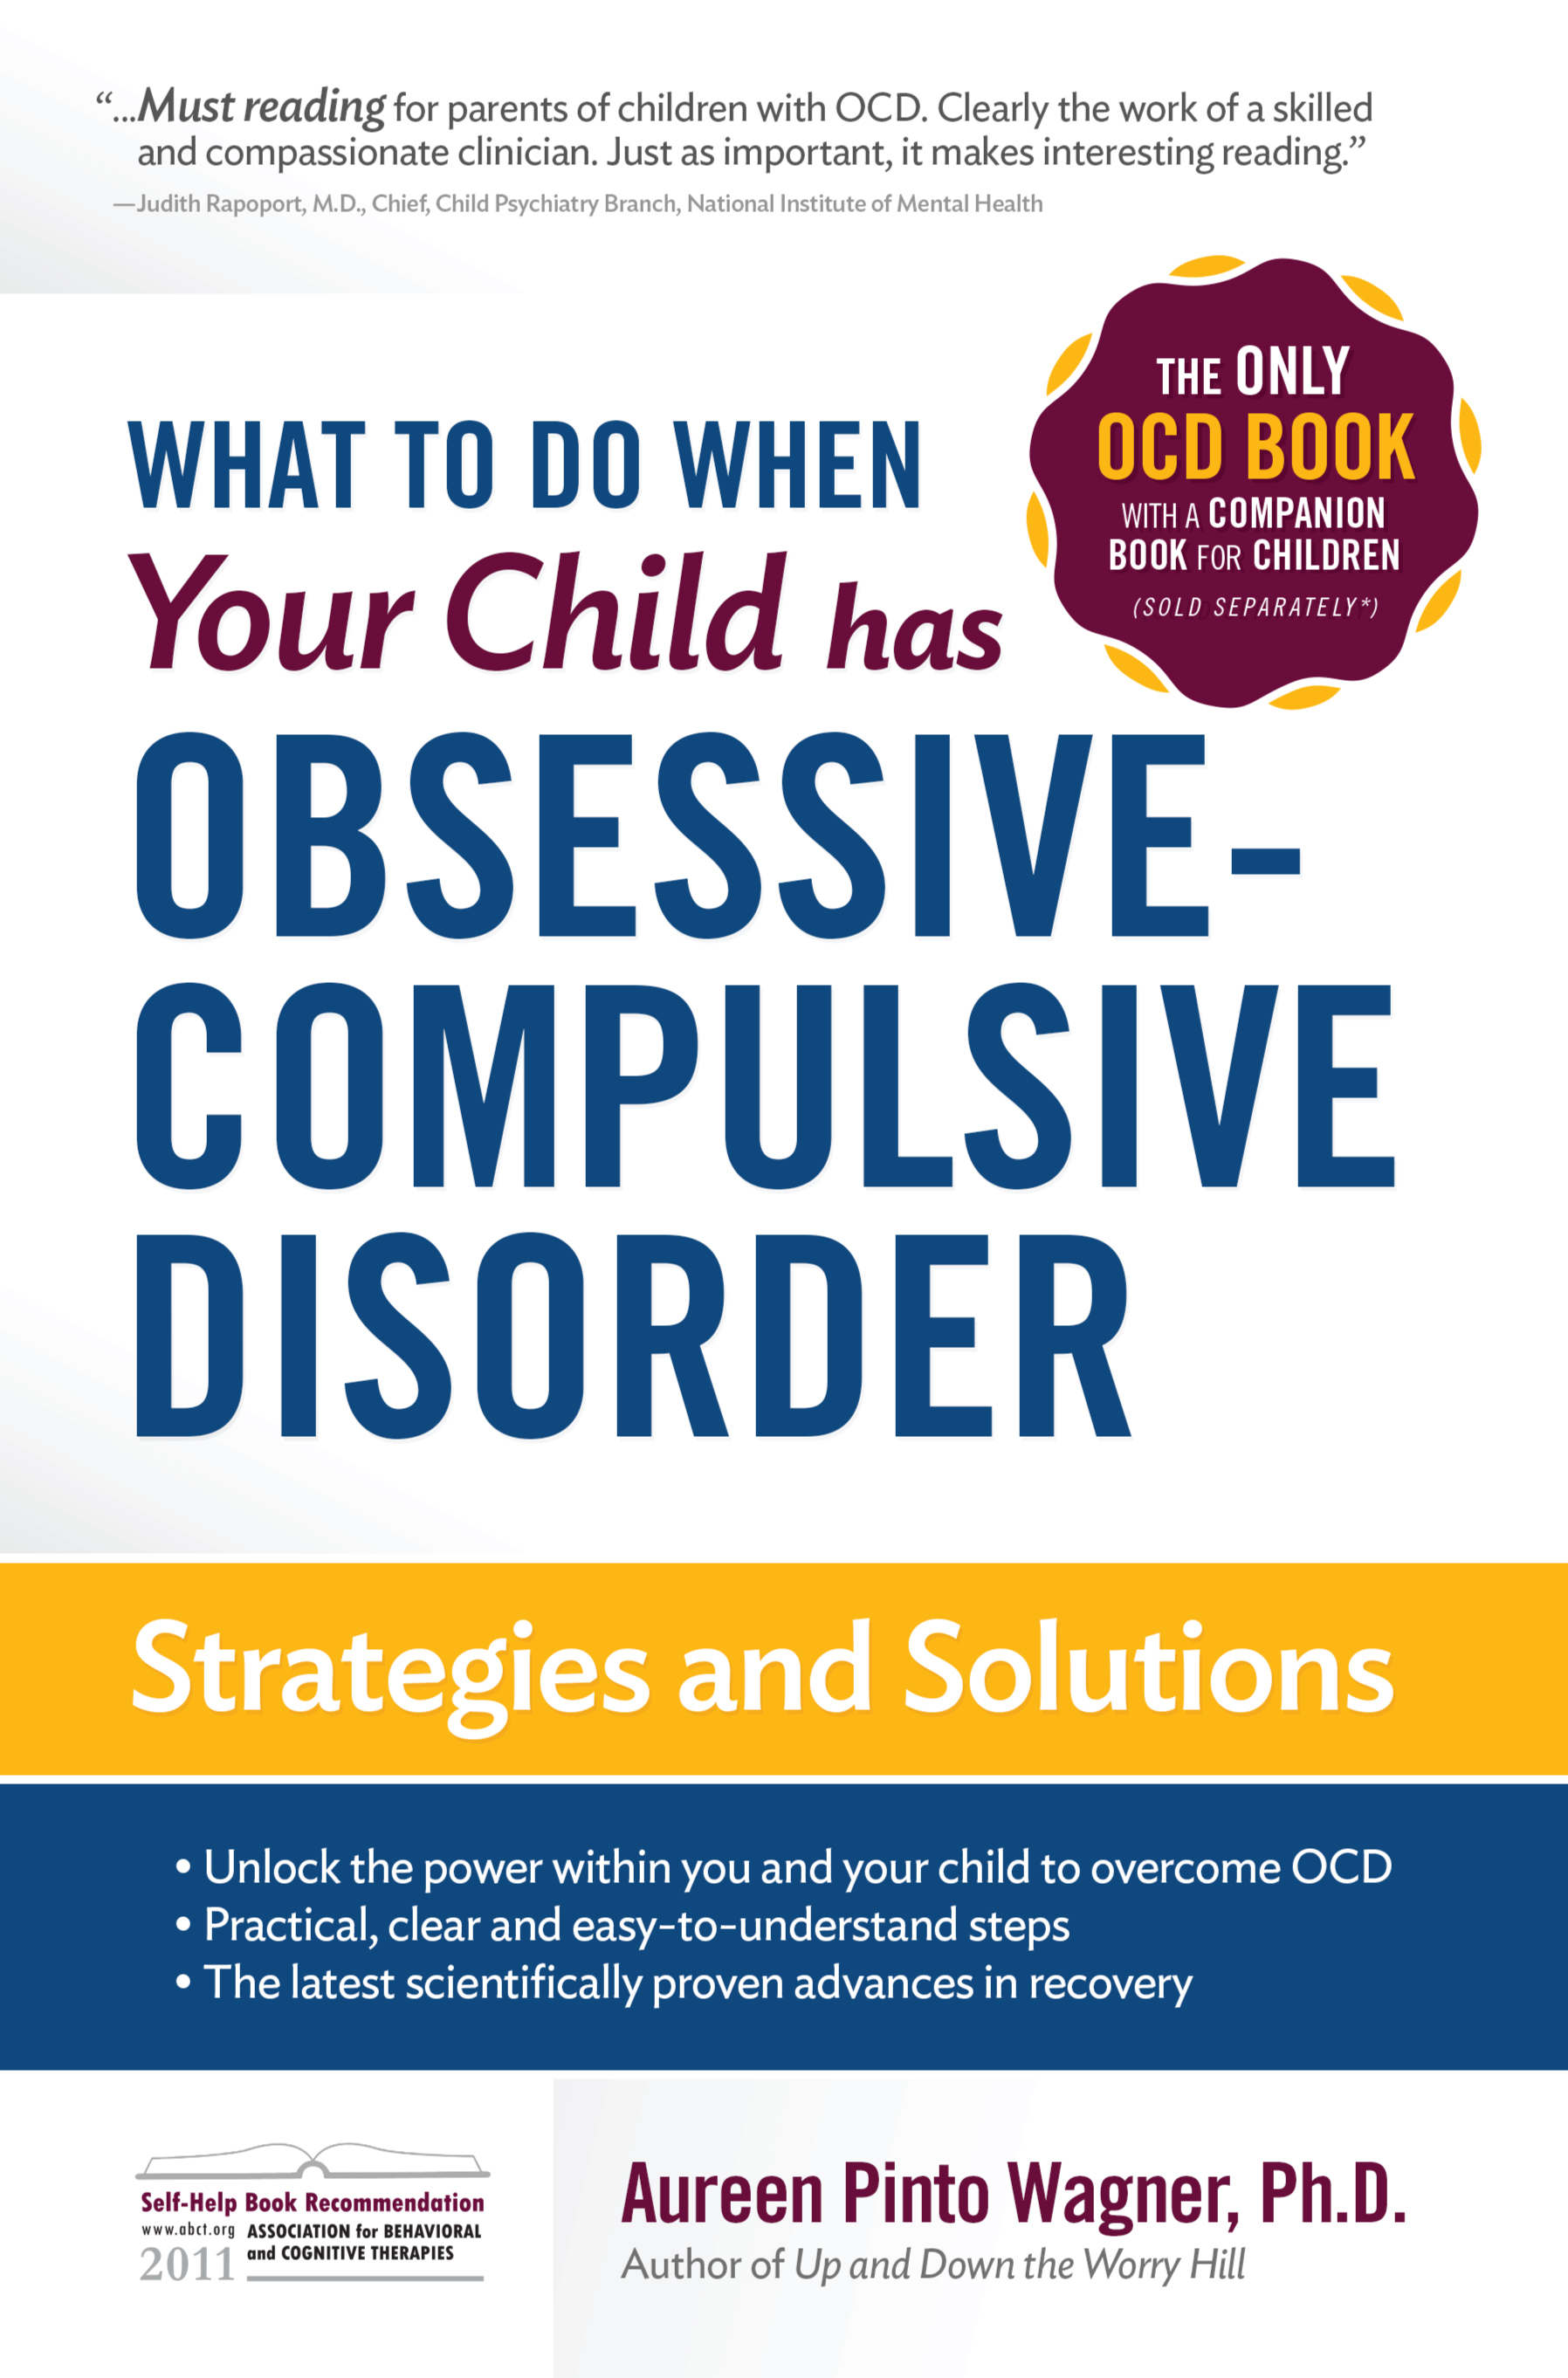 What to do when your Child has Obsessive-Compulsive Disorder